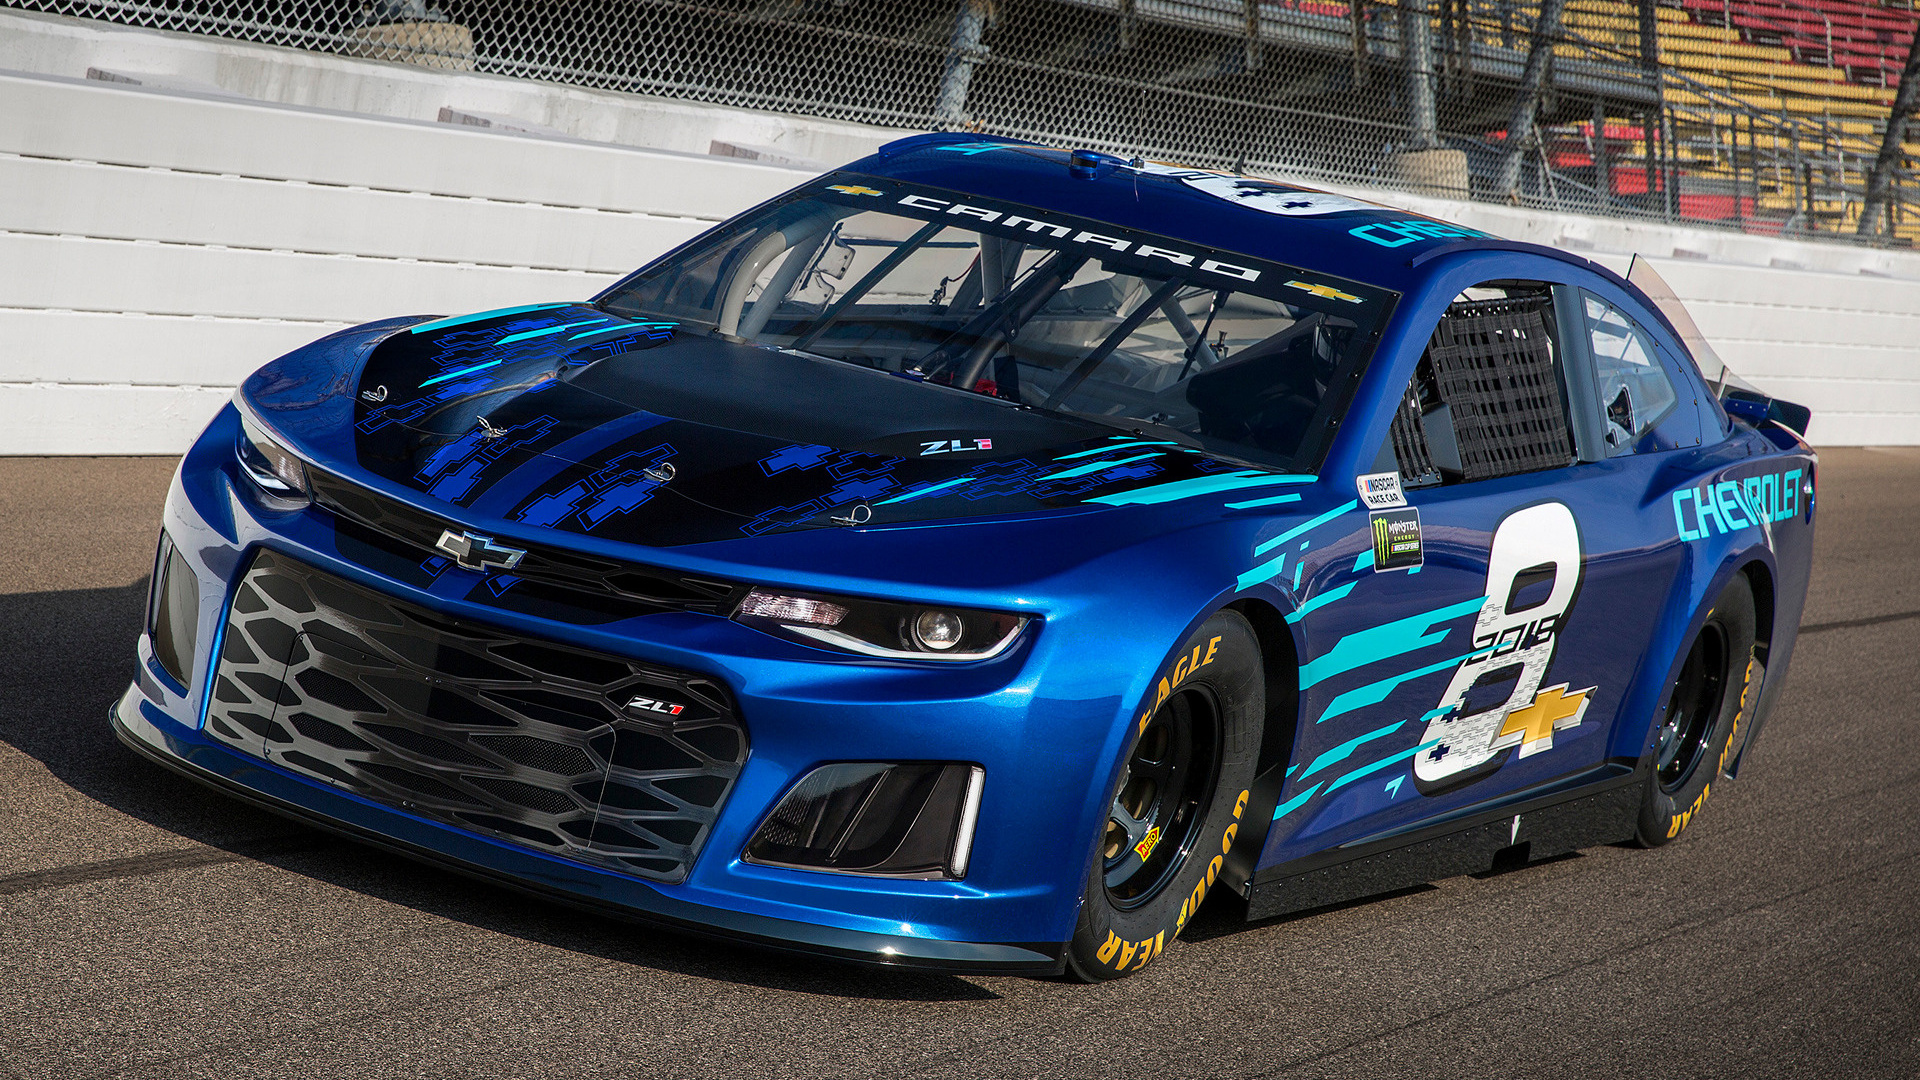 2018 Chevrolet Camaro ZL1 NASCAR Cup Series - Wallpapers ...